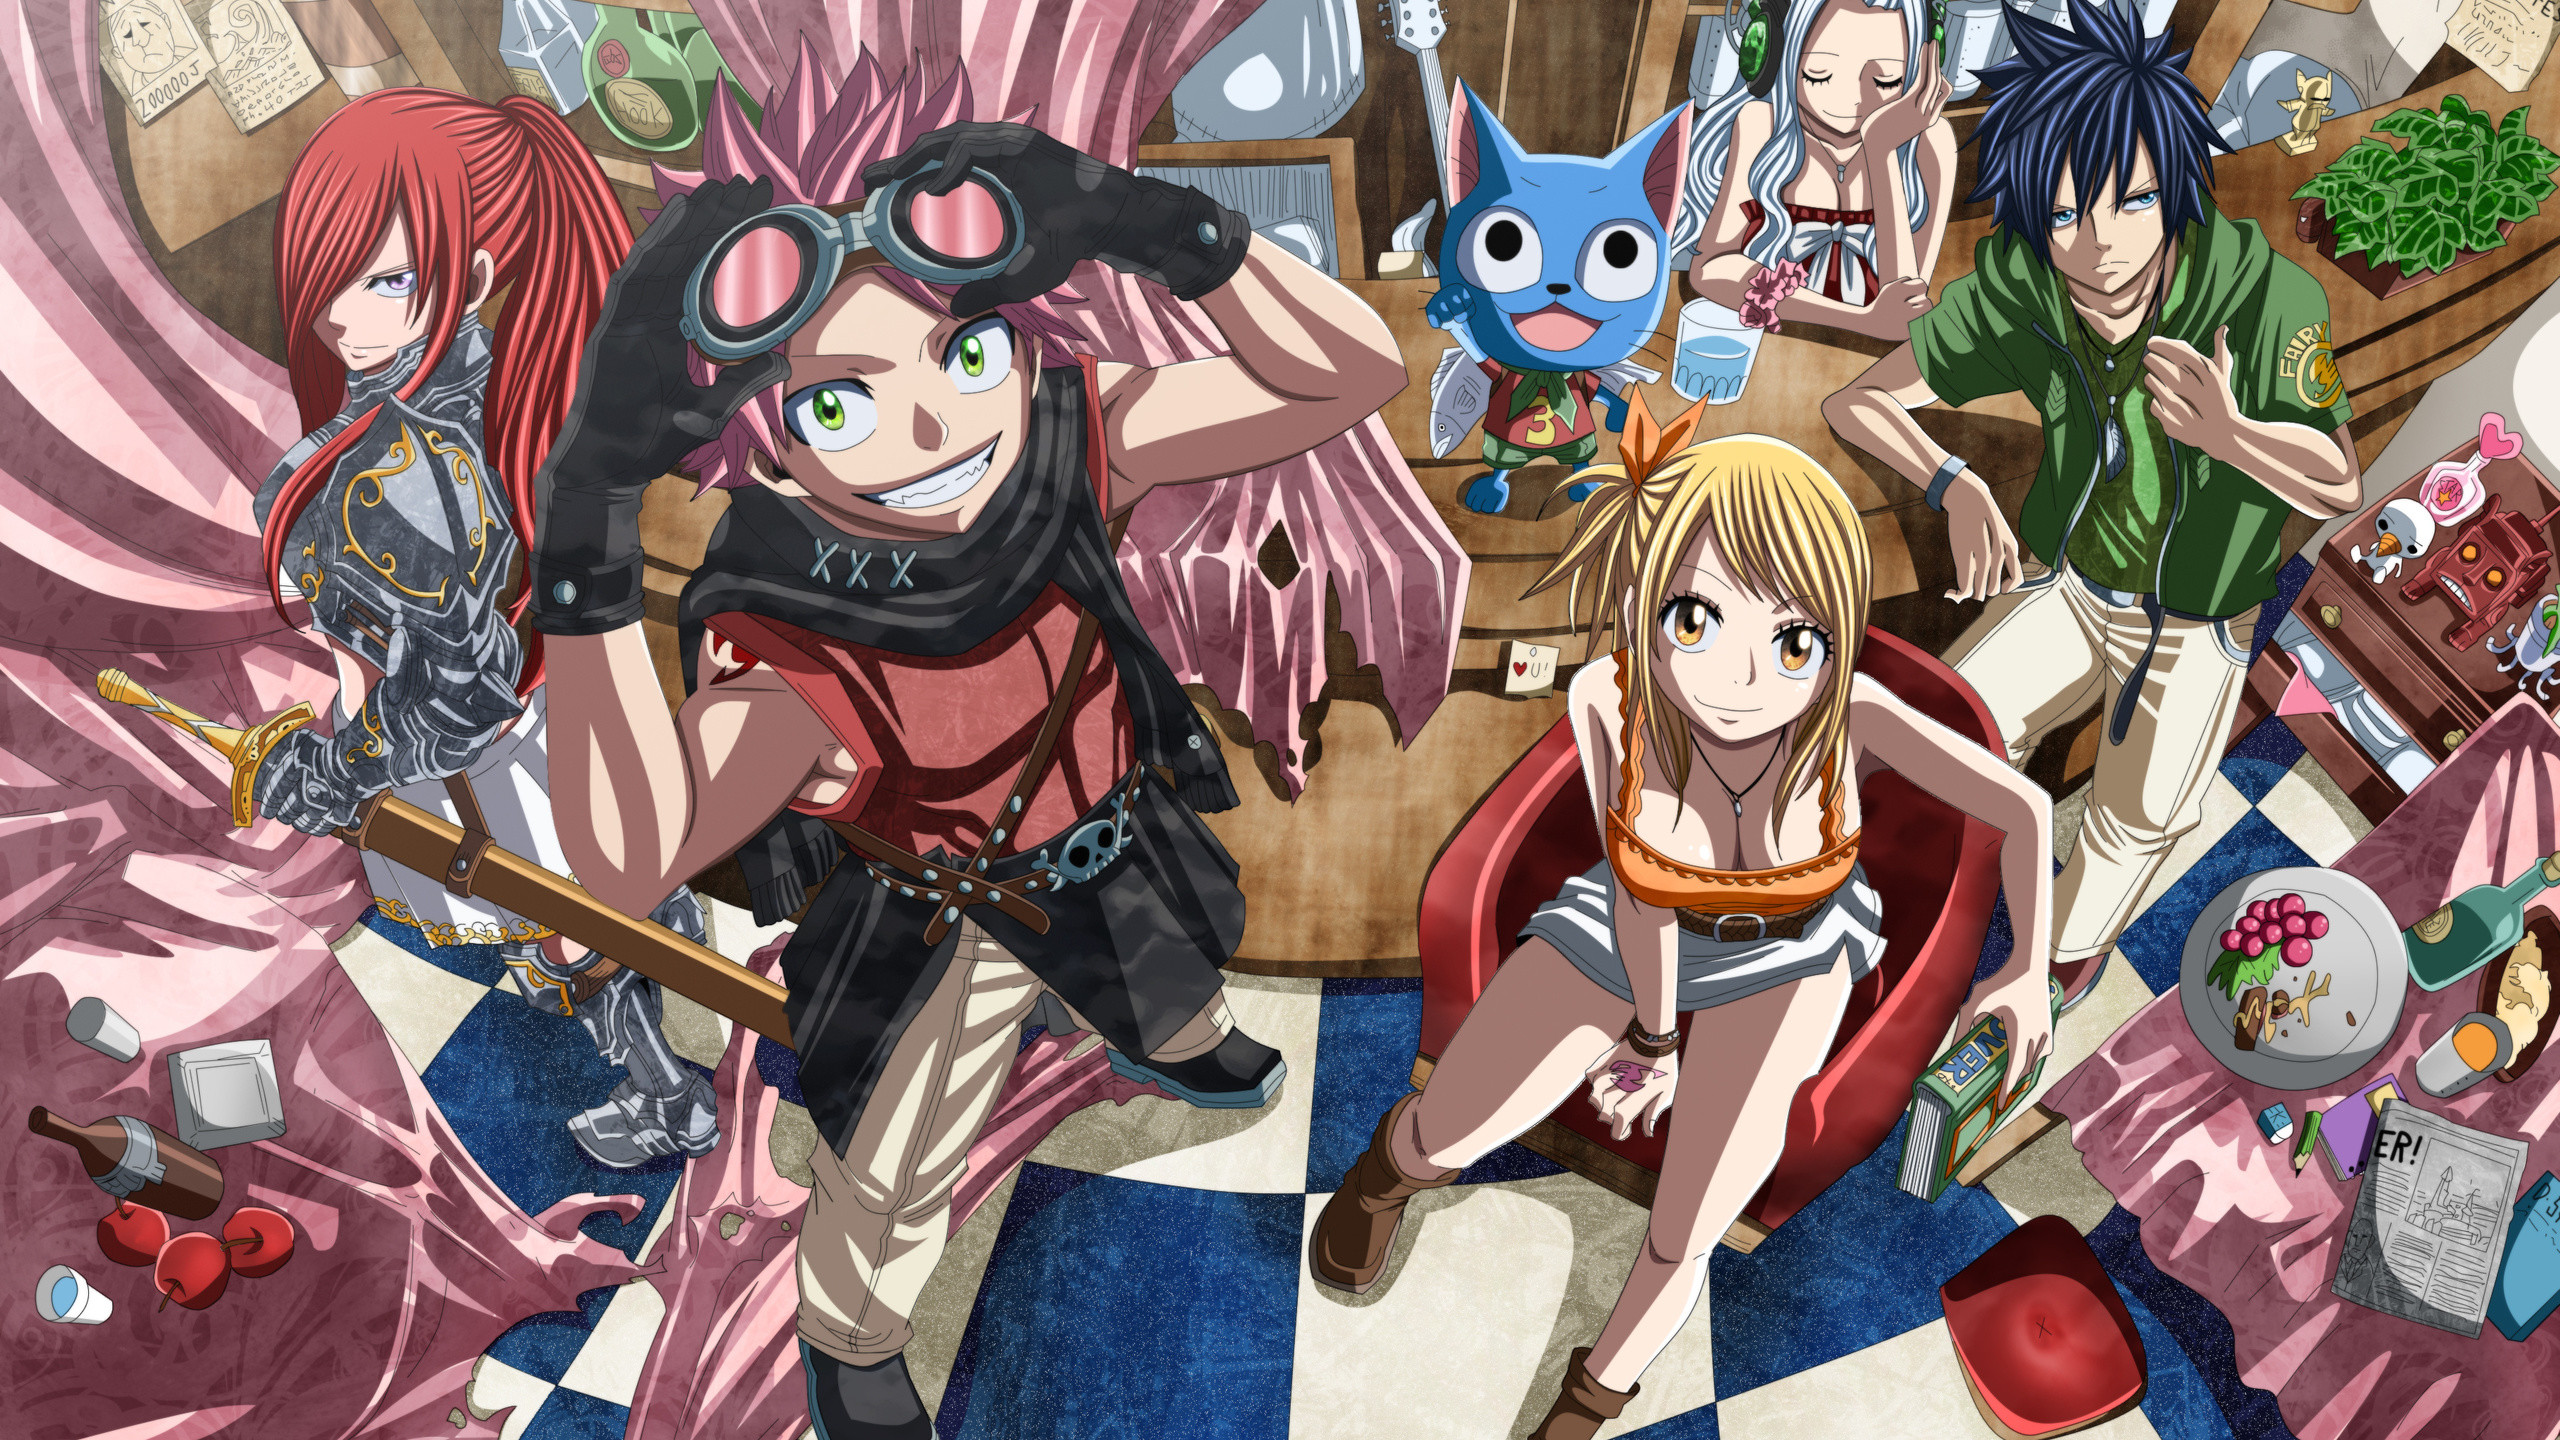 2560x1440 Natsu Dragneel, Futuretabs, Erza Scarlet, Anime, Art, Fairy Tail, Lucy